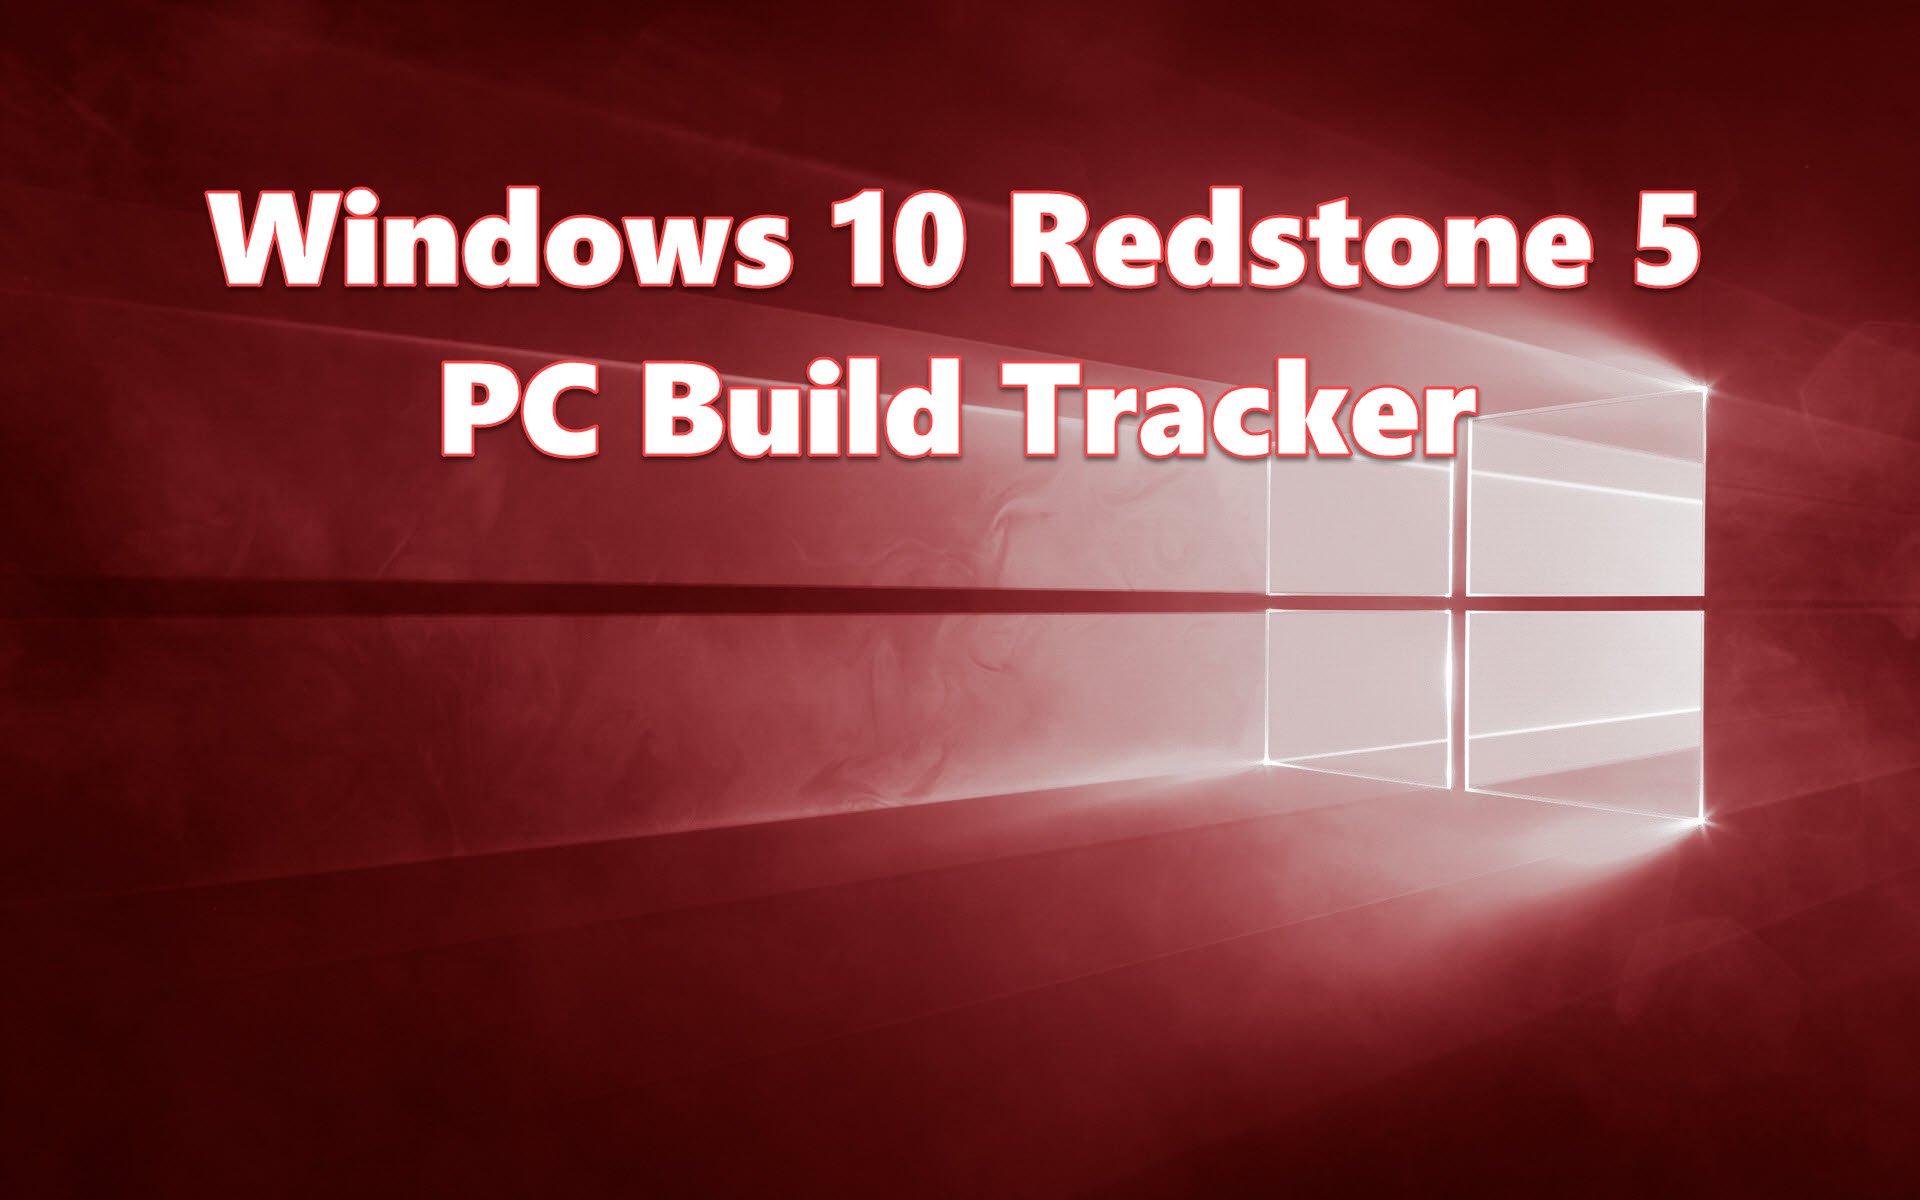 Windows 10 (Redstone 5) Build Tracker for PCs | IT Pro